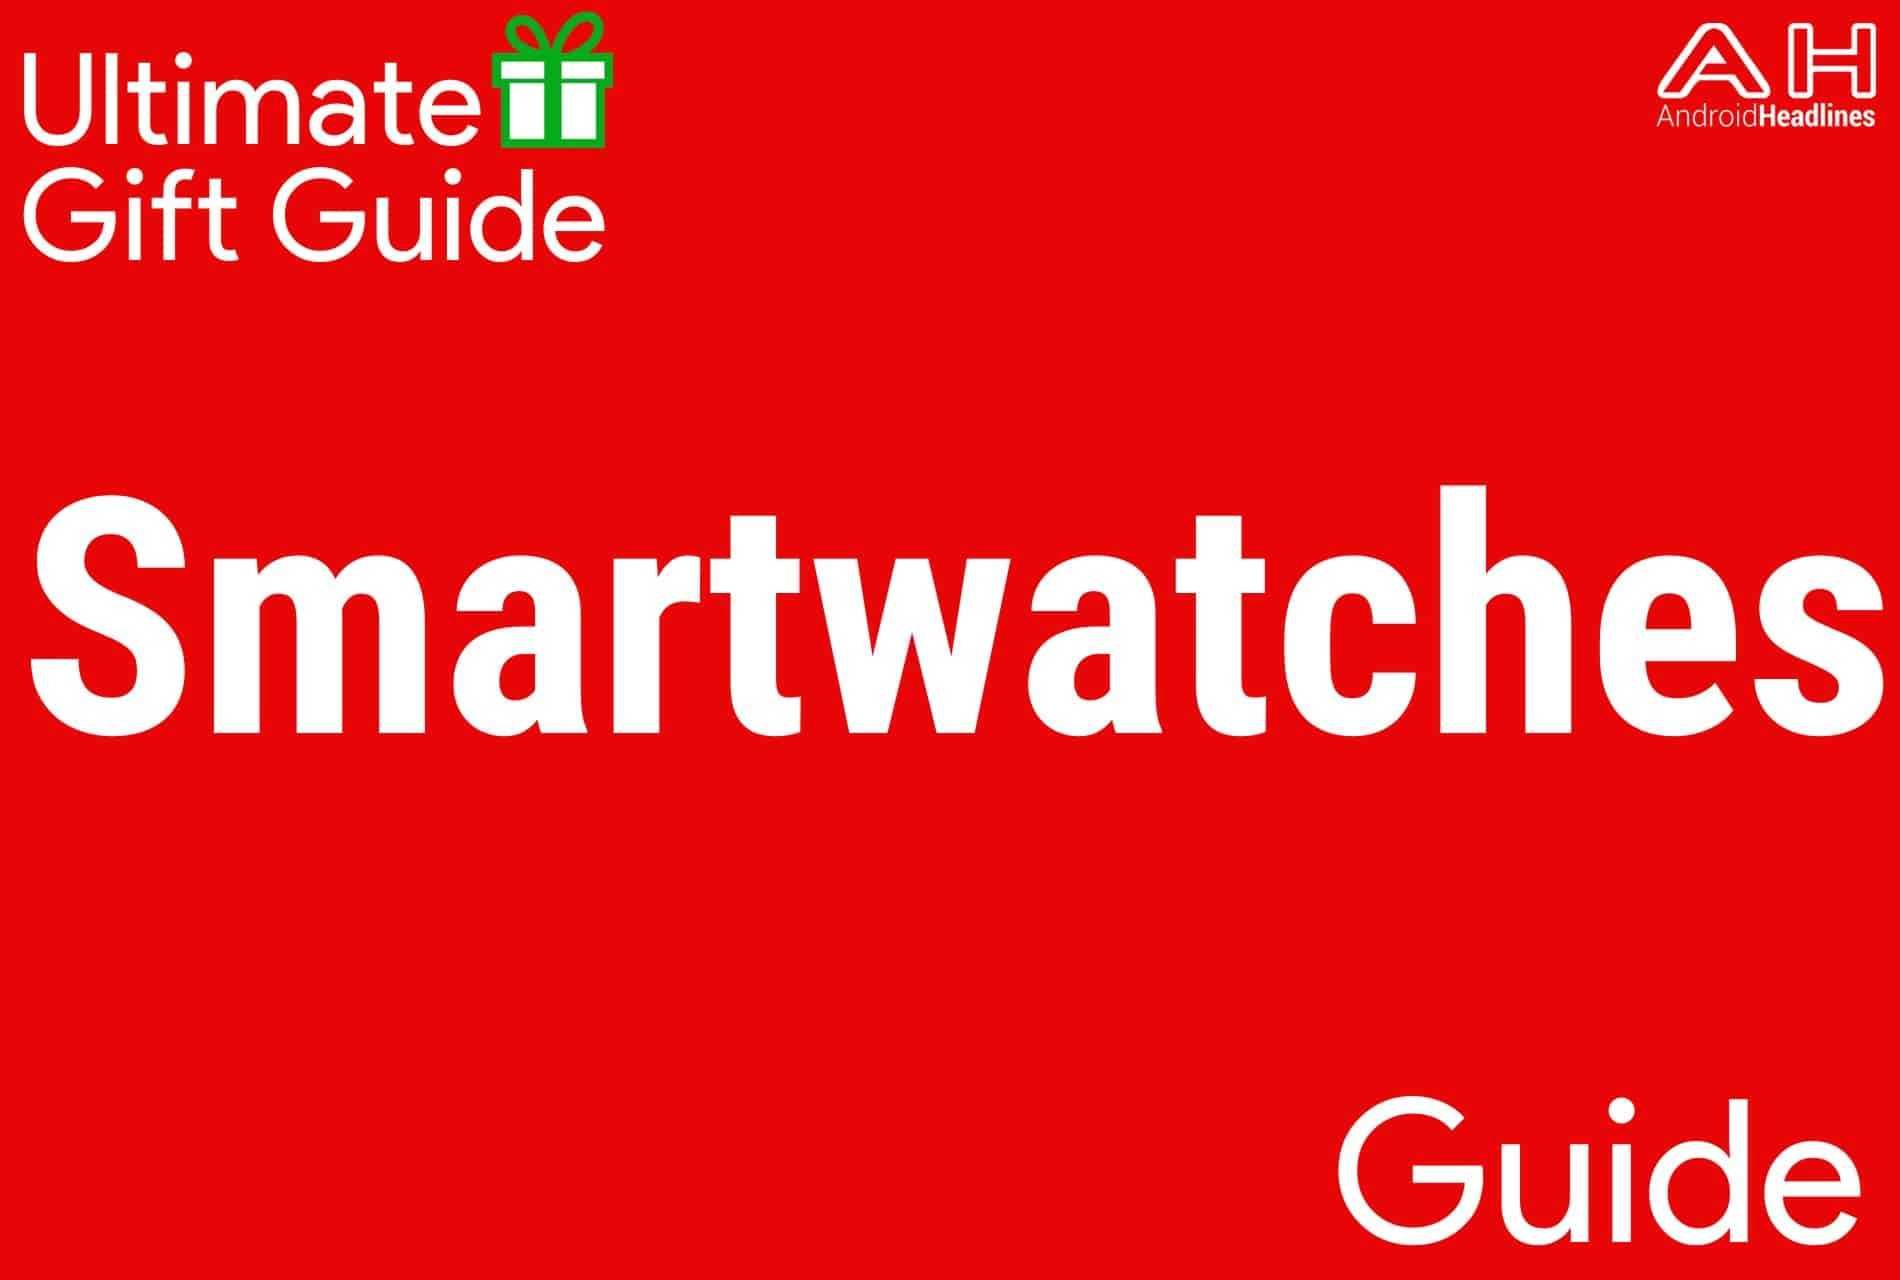 Android Smartwatches - Gift Guide 2015